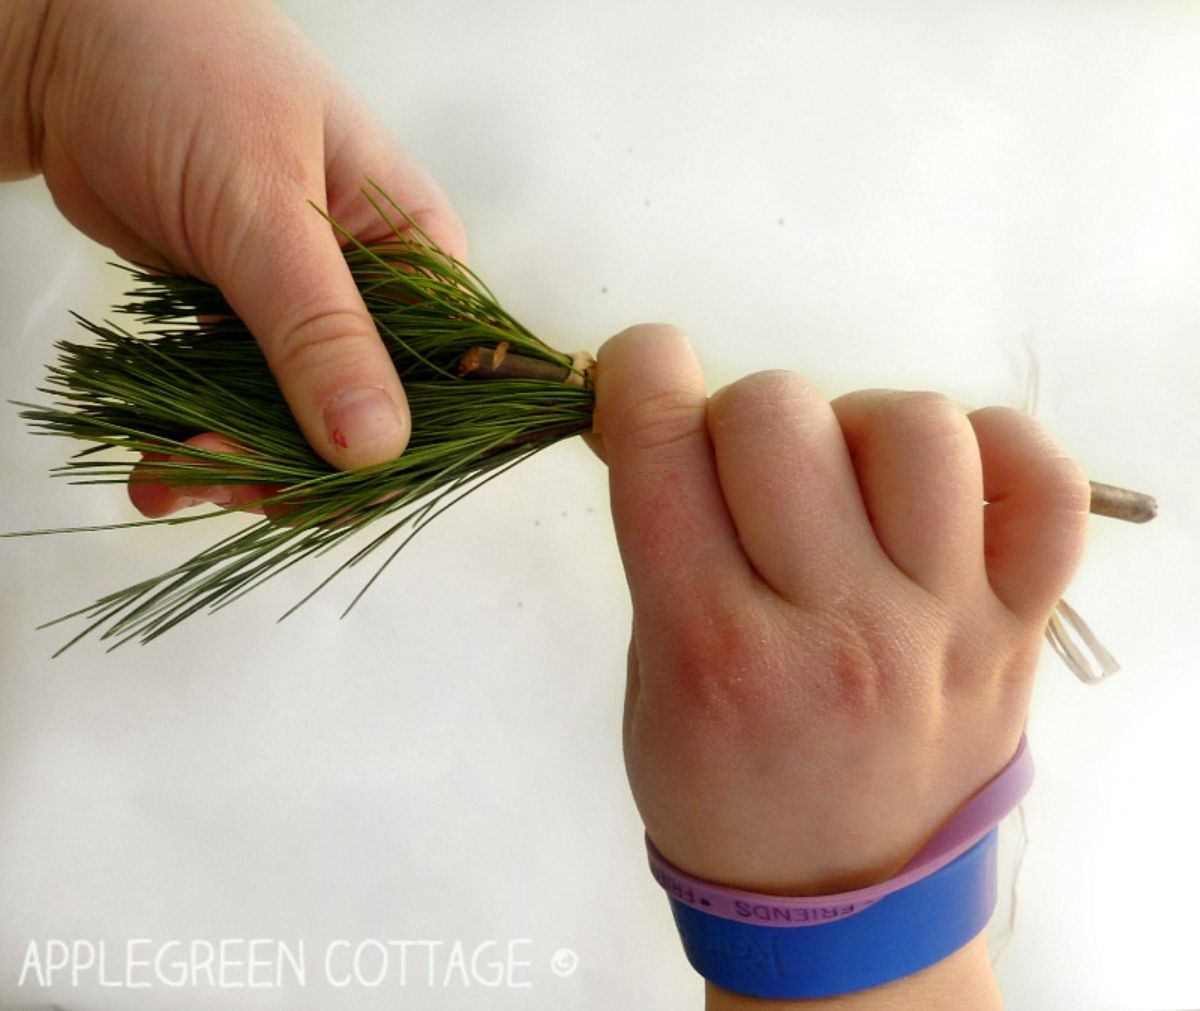 two hands hold pine needles and a twig, forming them into a paintbrush